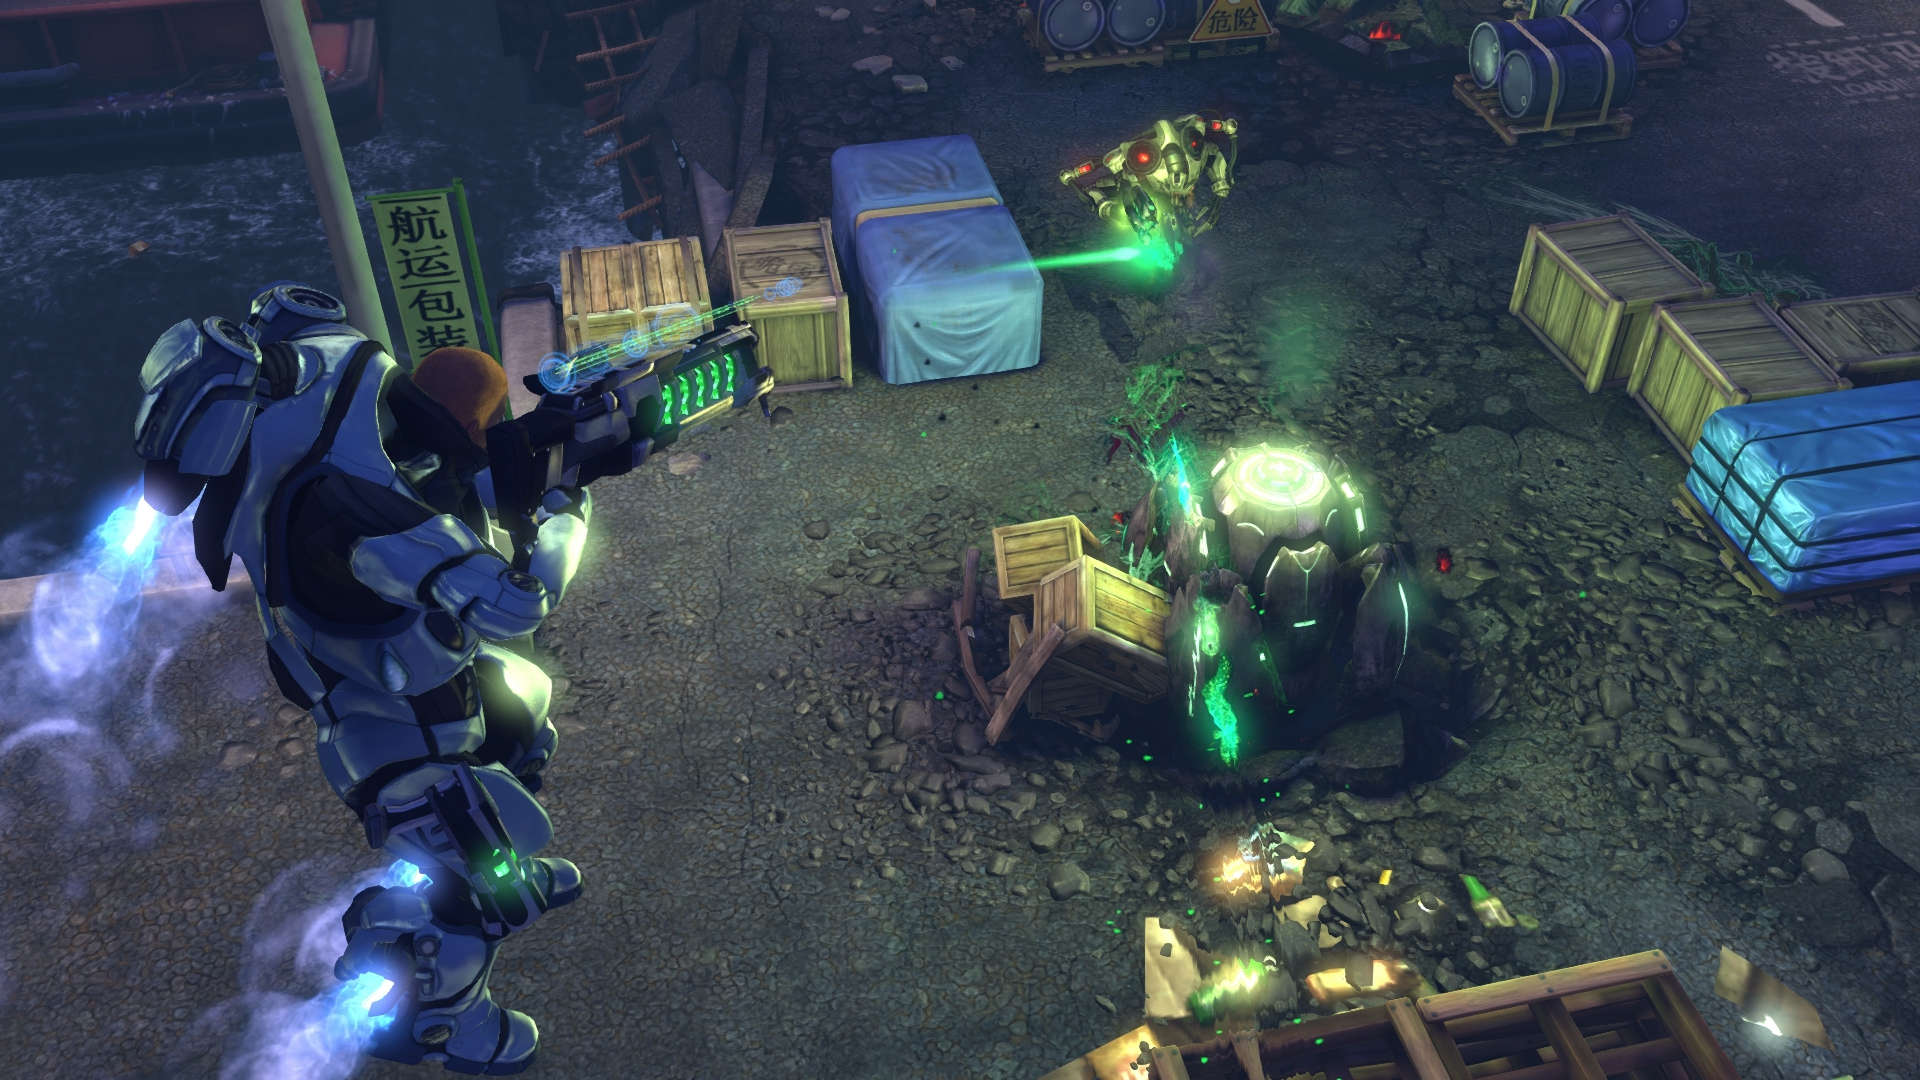 Gallery images and information: xcom enemy within logo